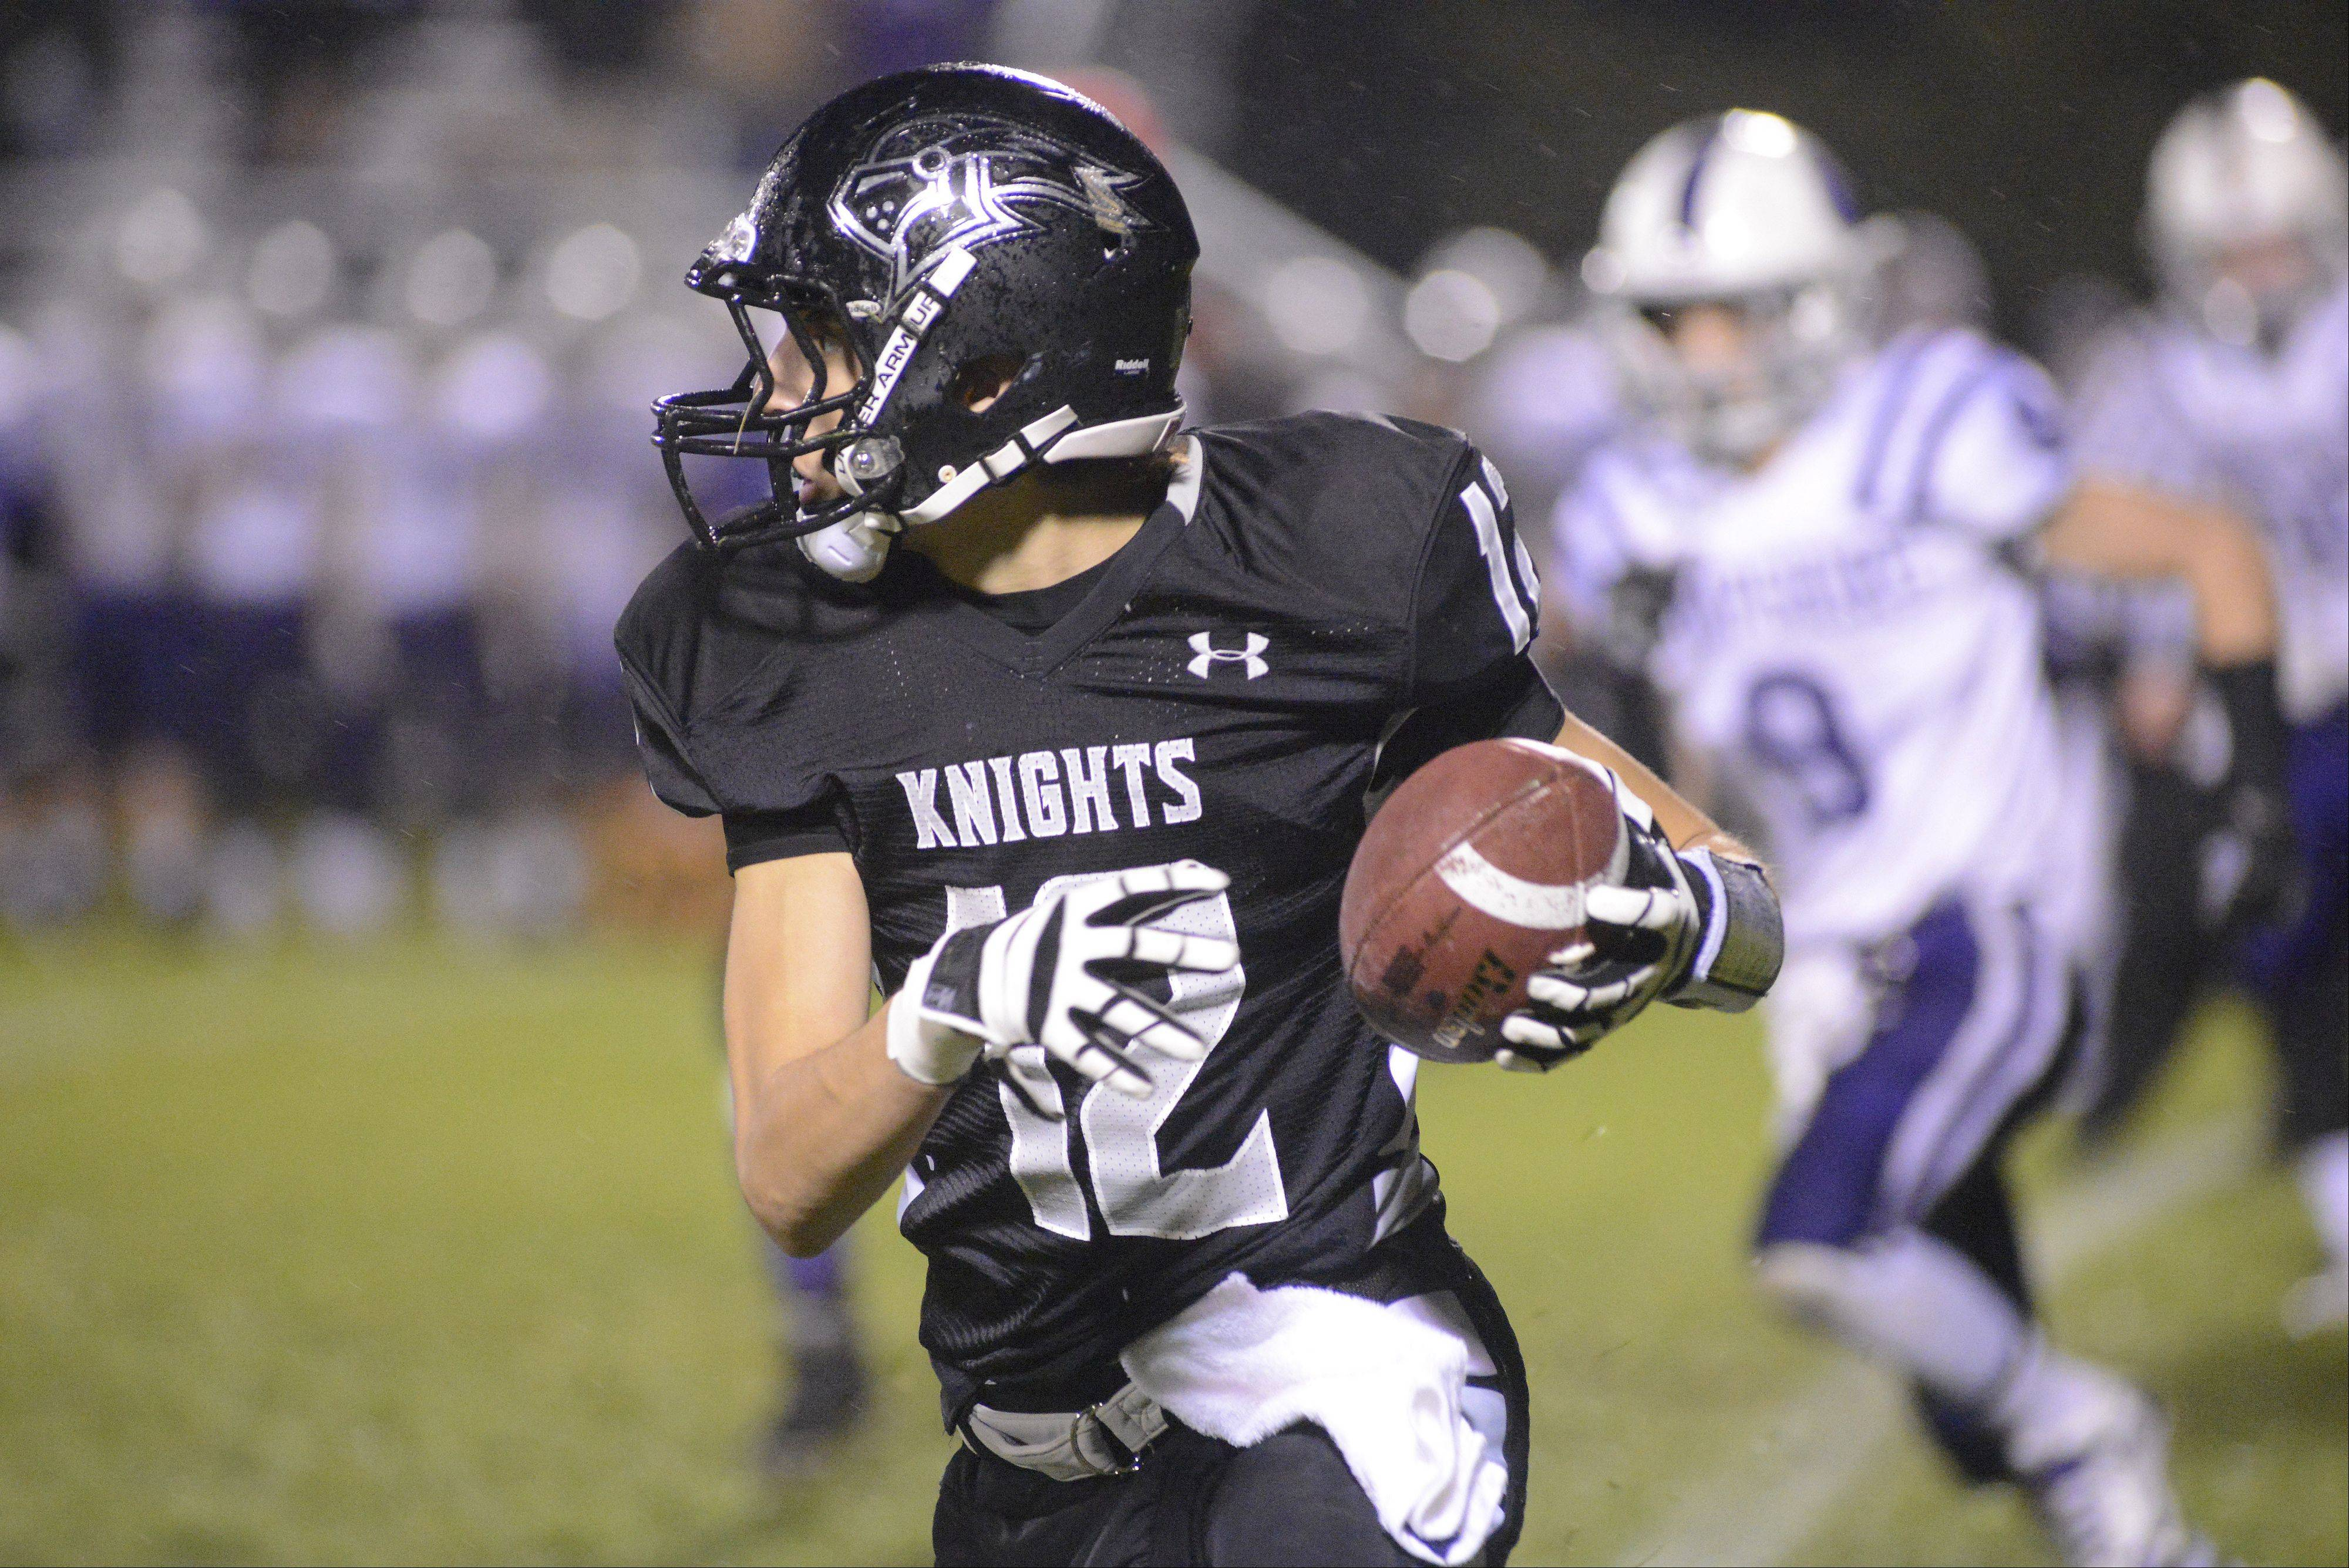 Kaneland's John Pruett makes his way down the field in the first quarter on Friday, November 1.